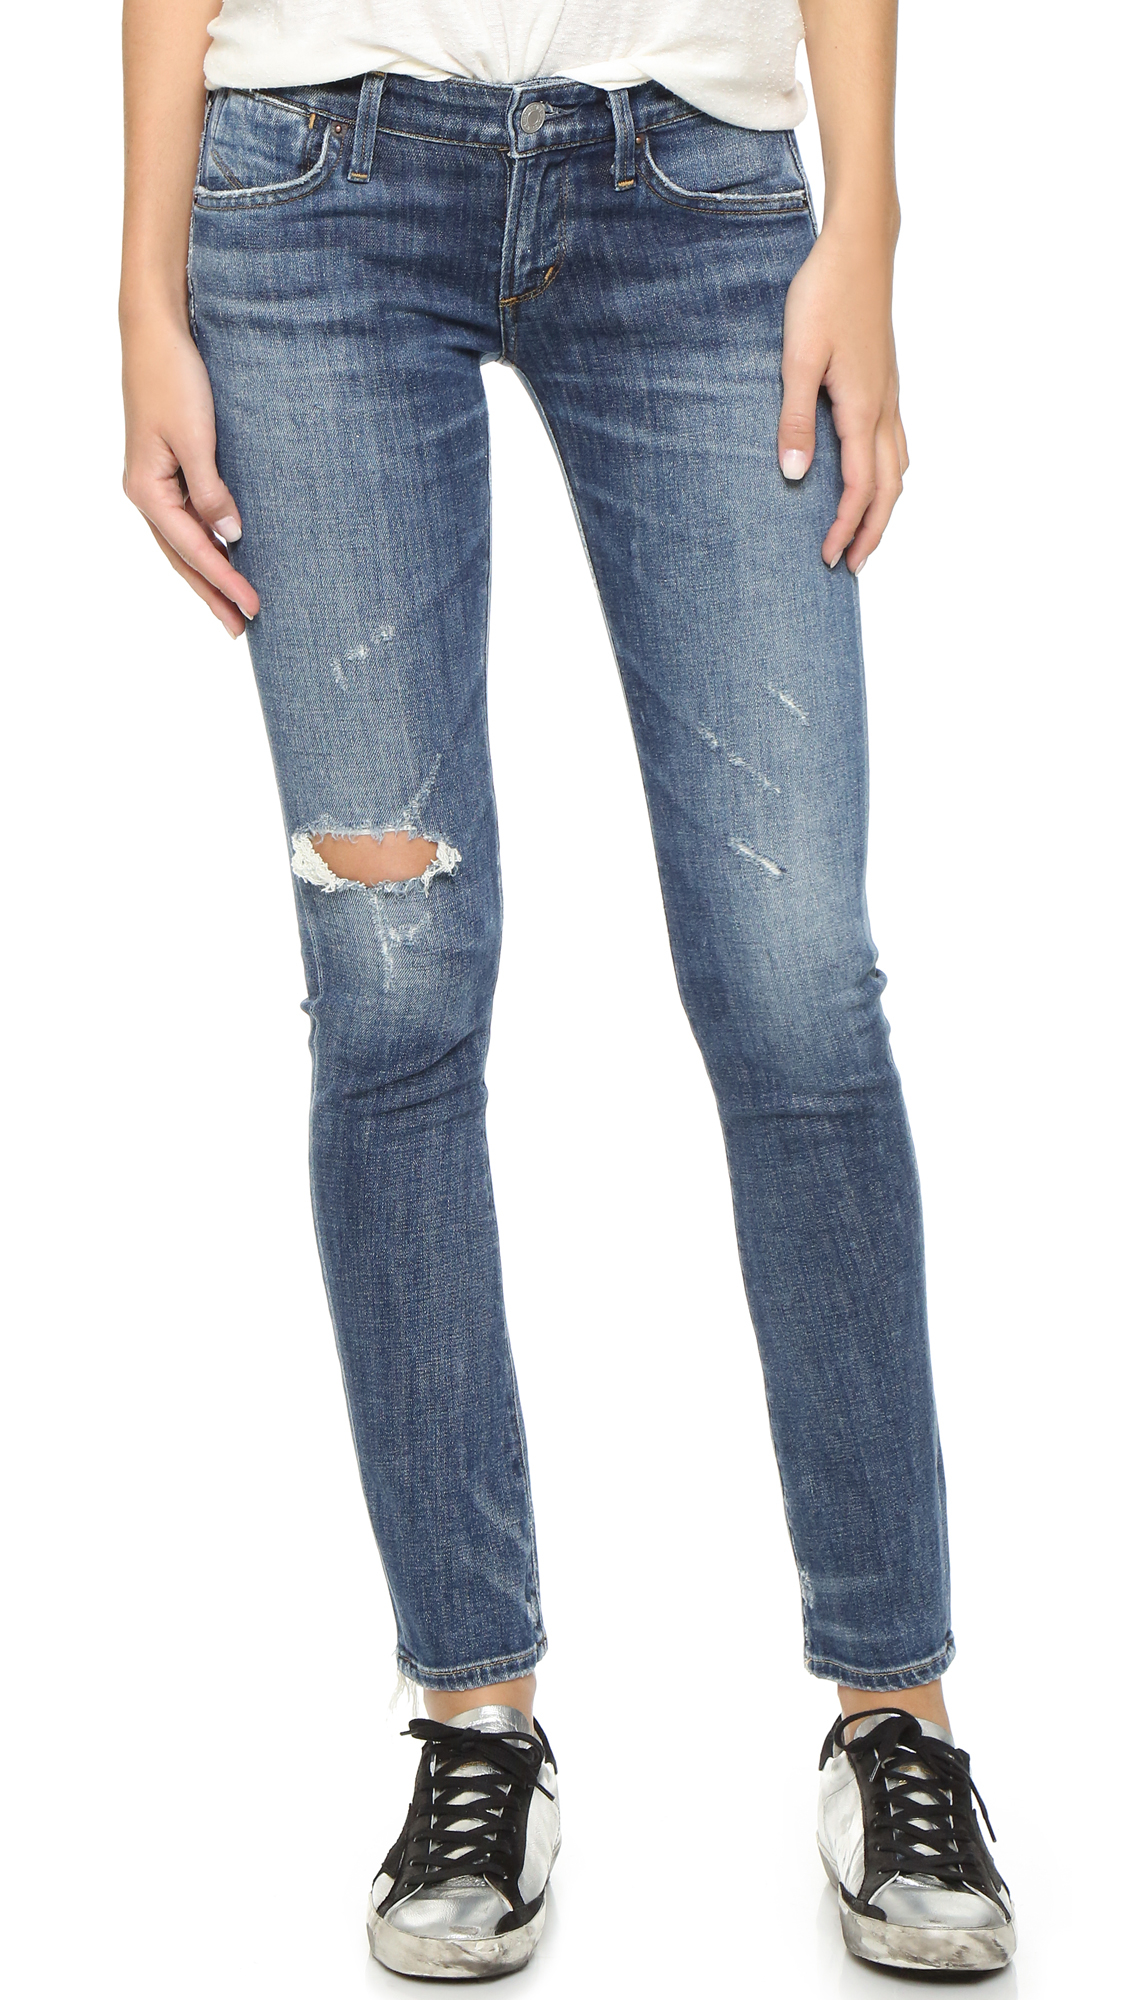 Your trendy fashion finds are at New York & Company. Shop skinny jeans for women from petite, tall, cropped and more skinny jeans.